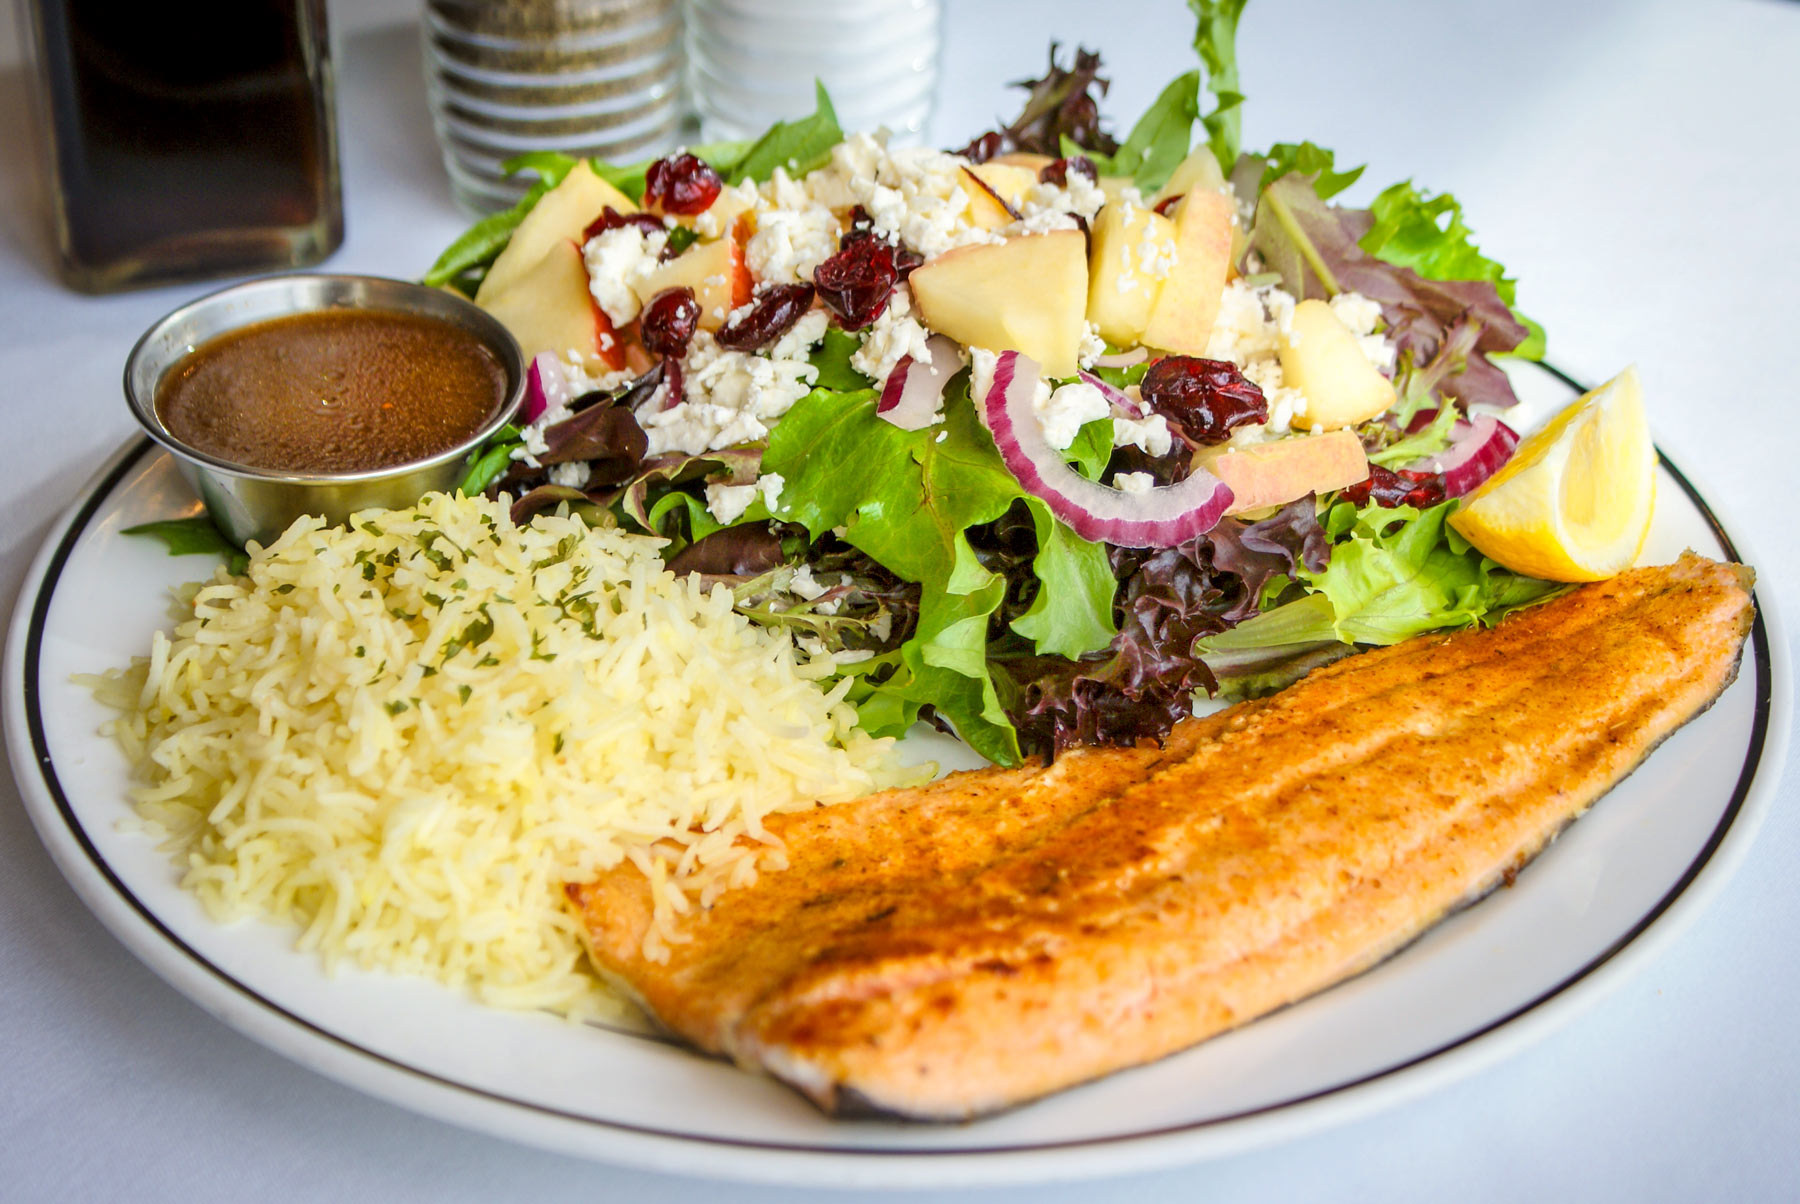 Grilled-Trout-with-Salad-and-Rice-2-Edit